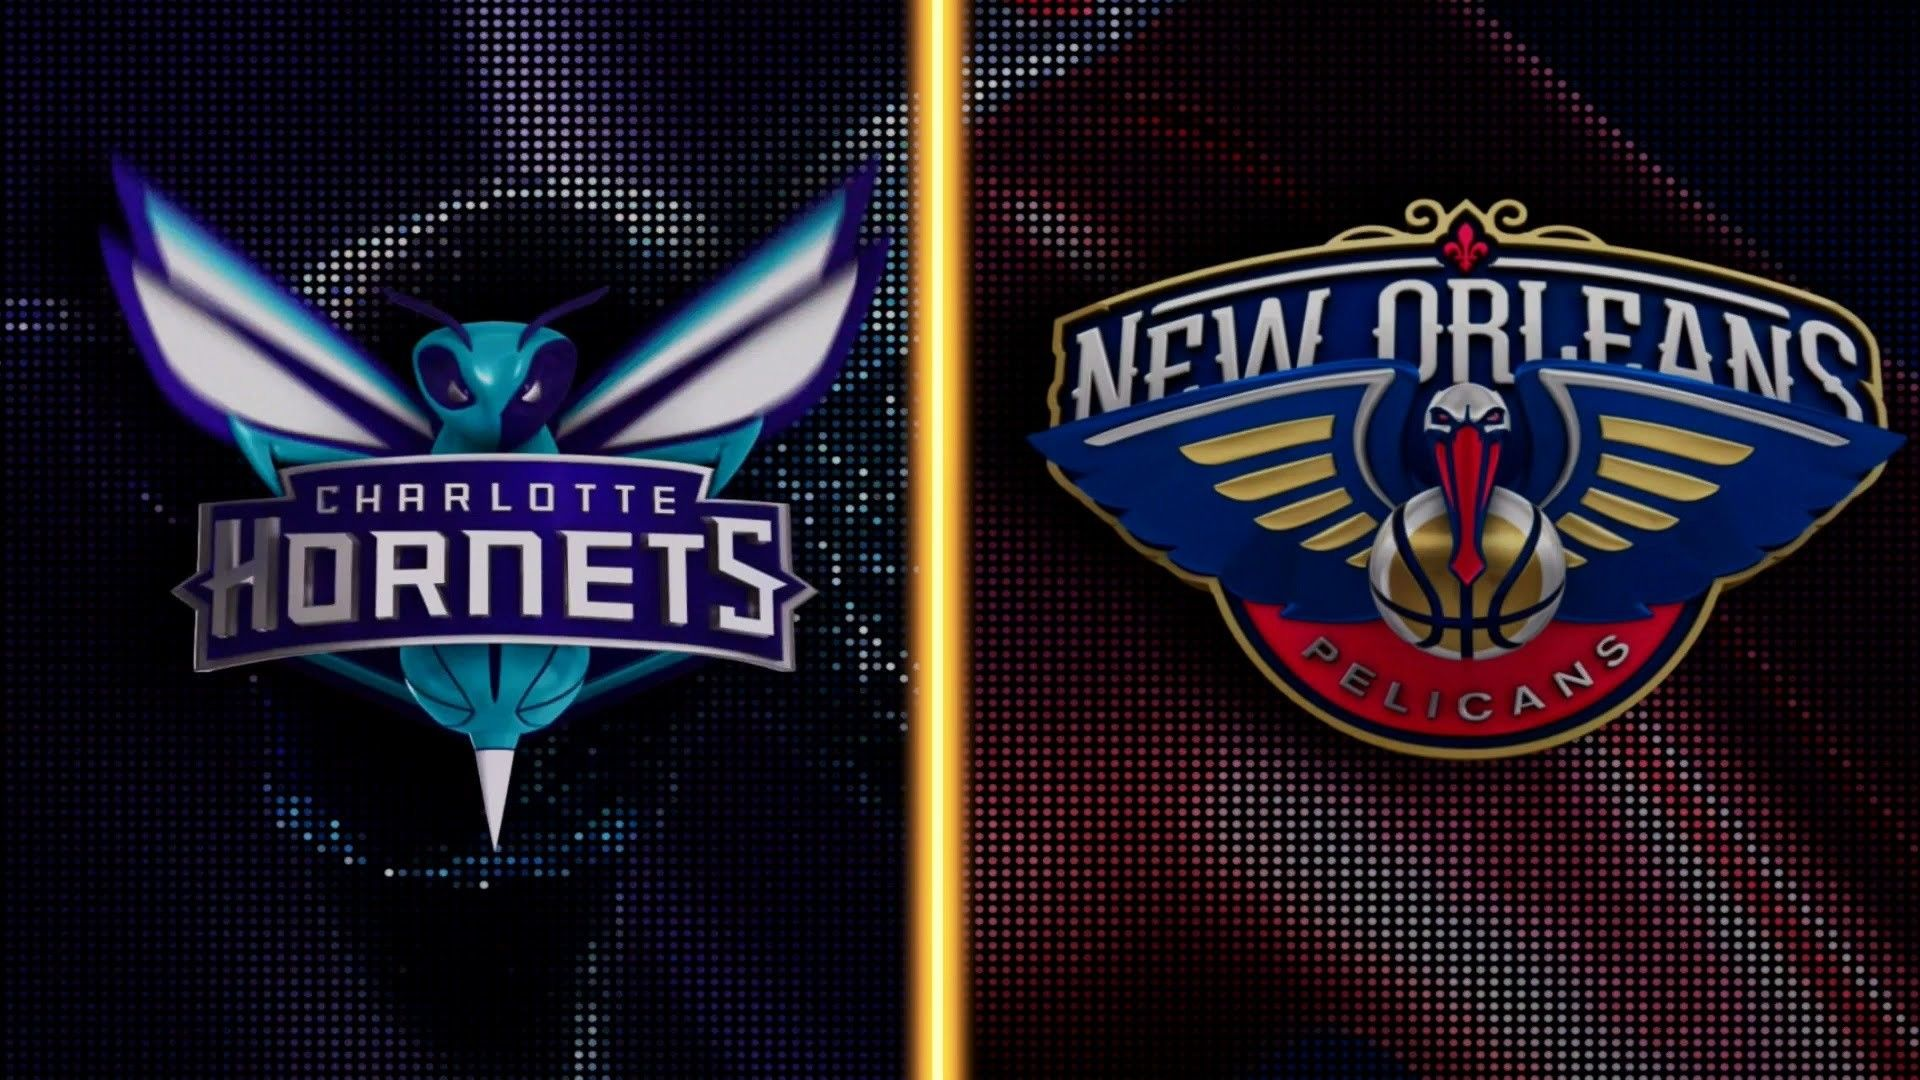 1920x1080 Charlotte Hornets Wallpapers (76+ images)